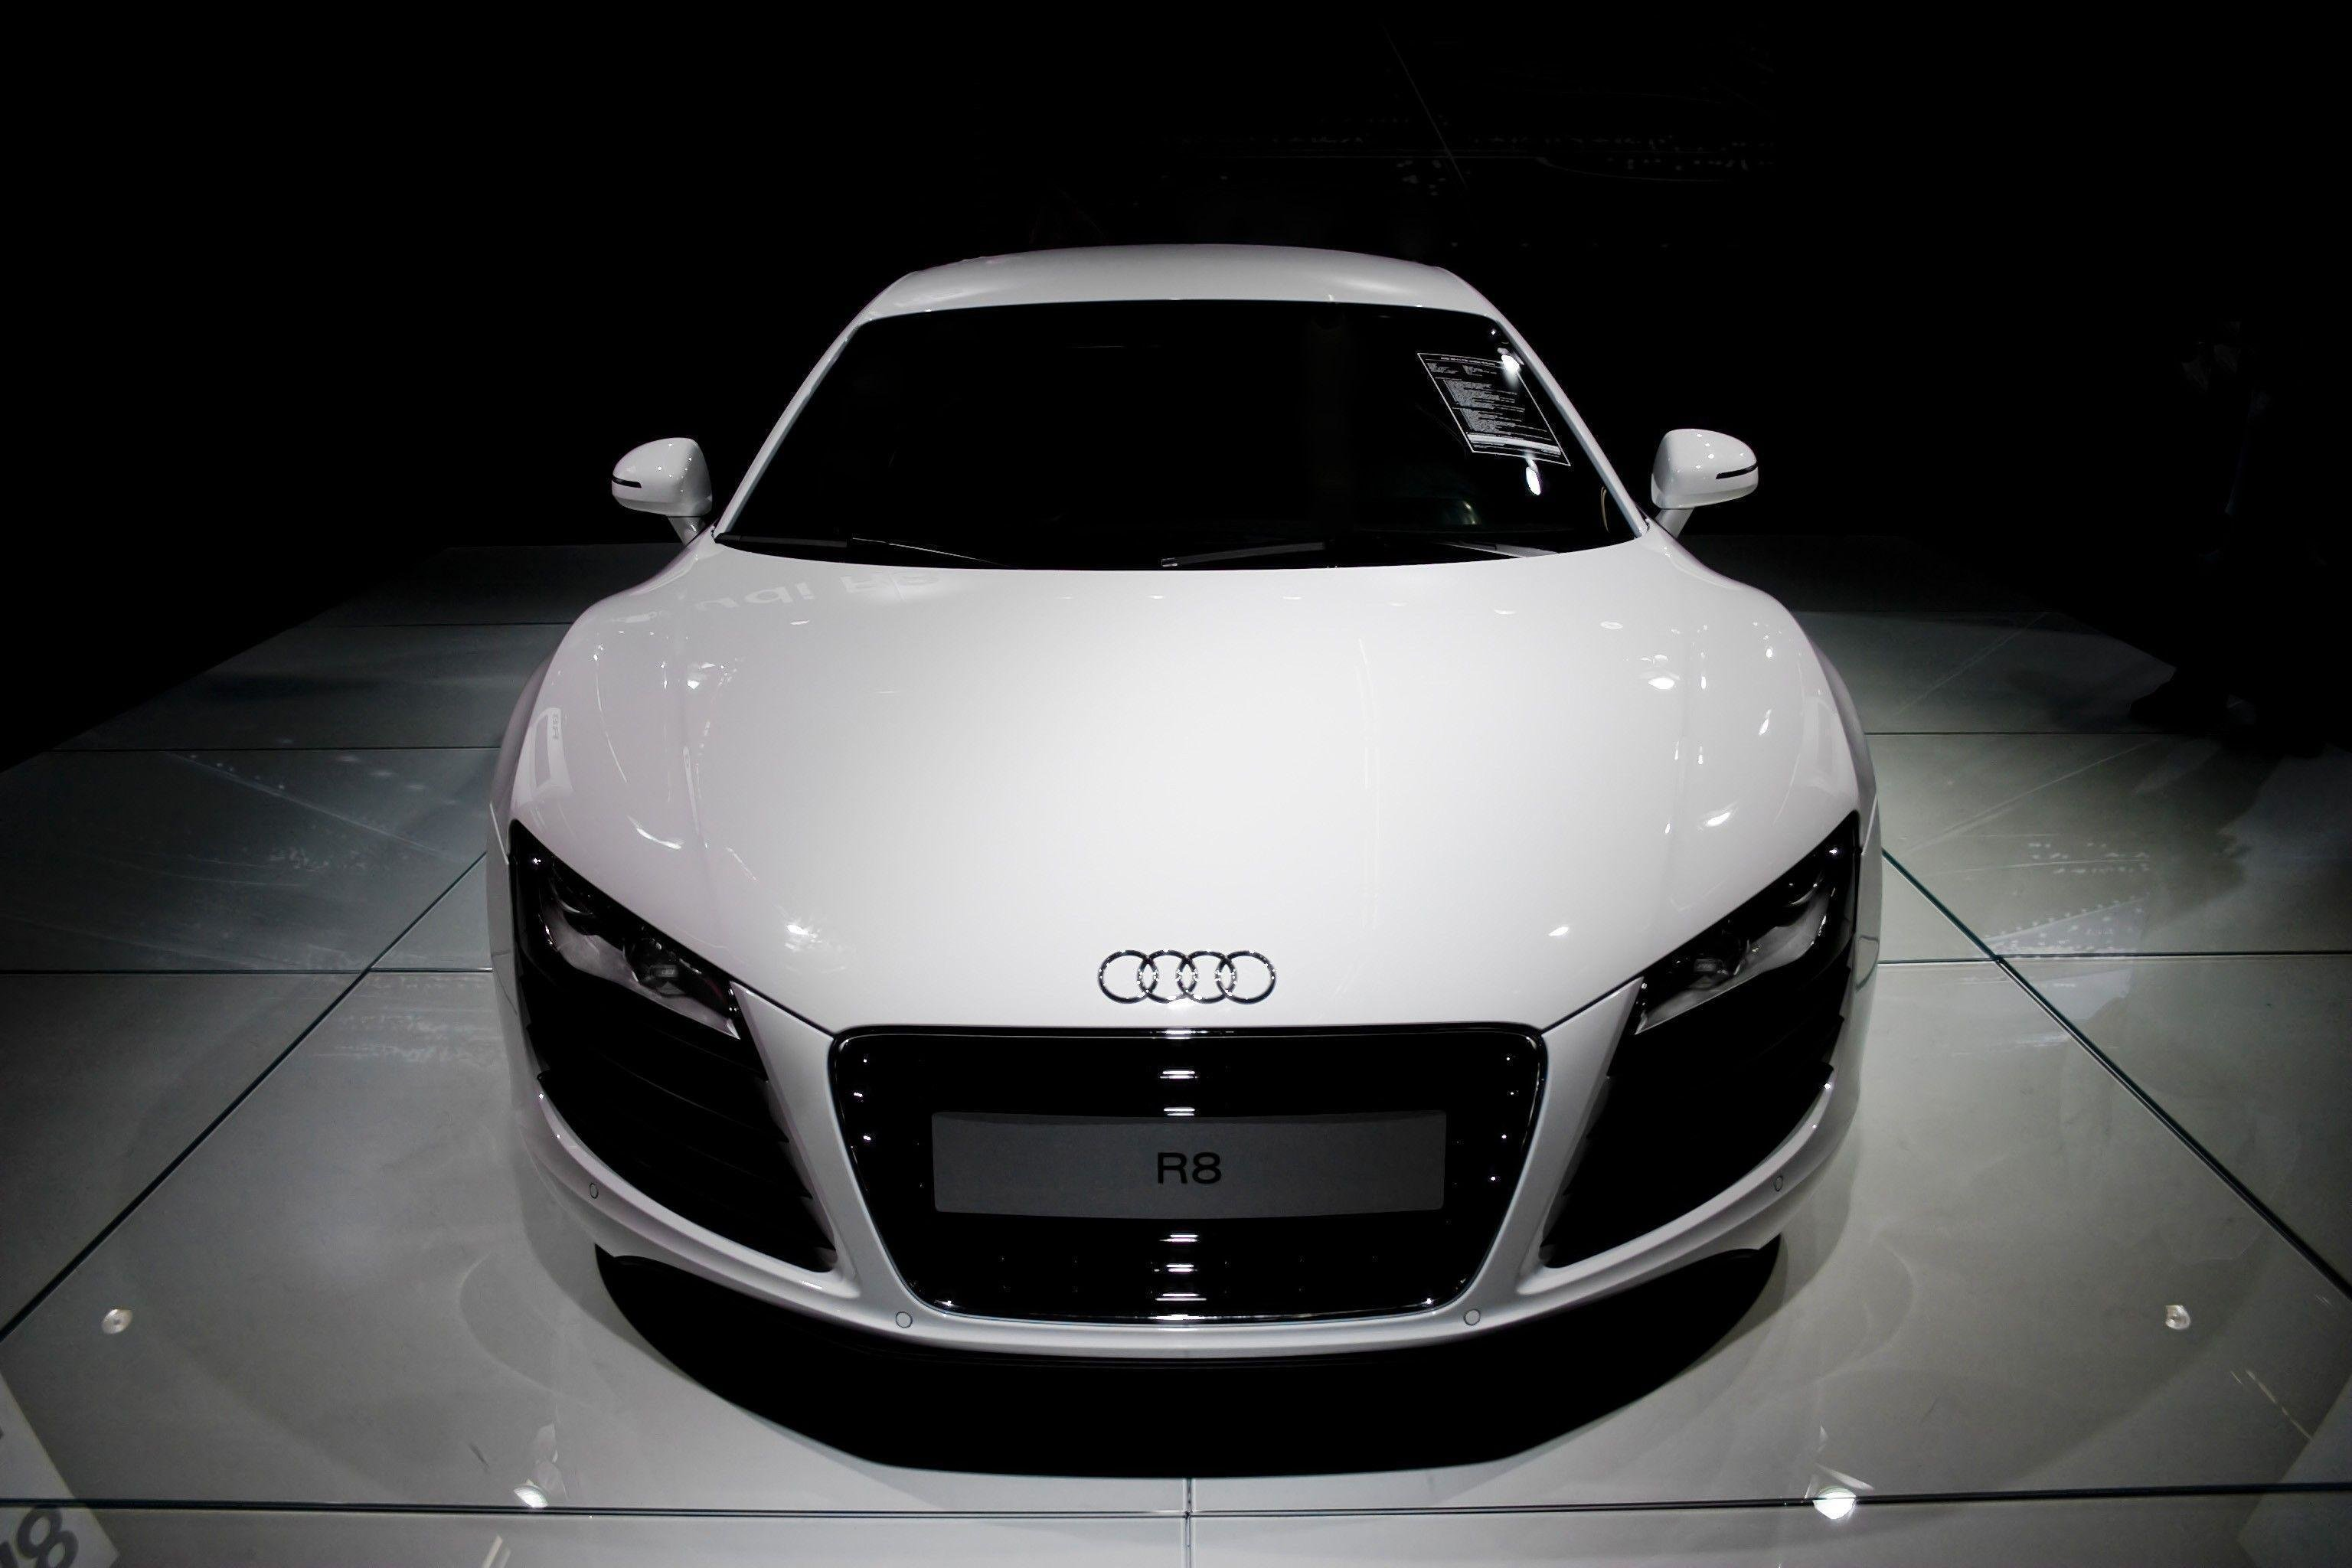 Latest Audi R8 Hd Wallpapers Wallpaper Cave Free Download